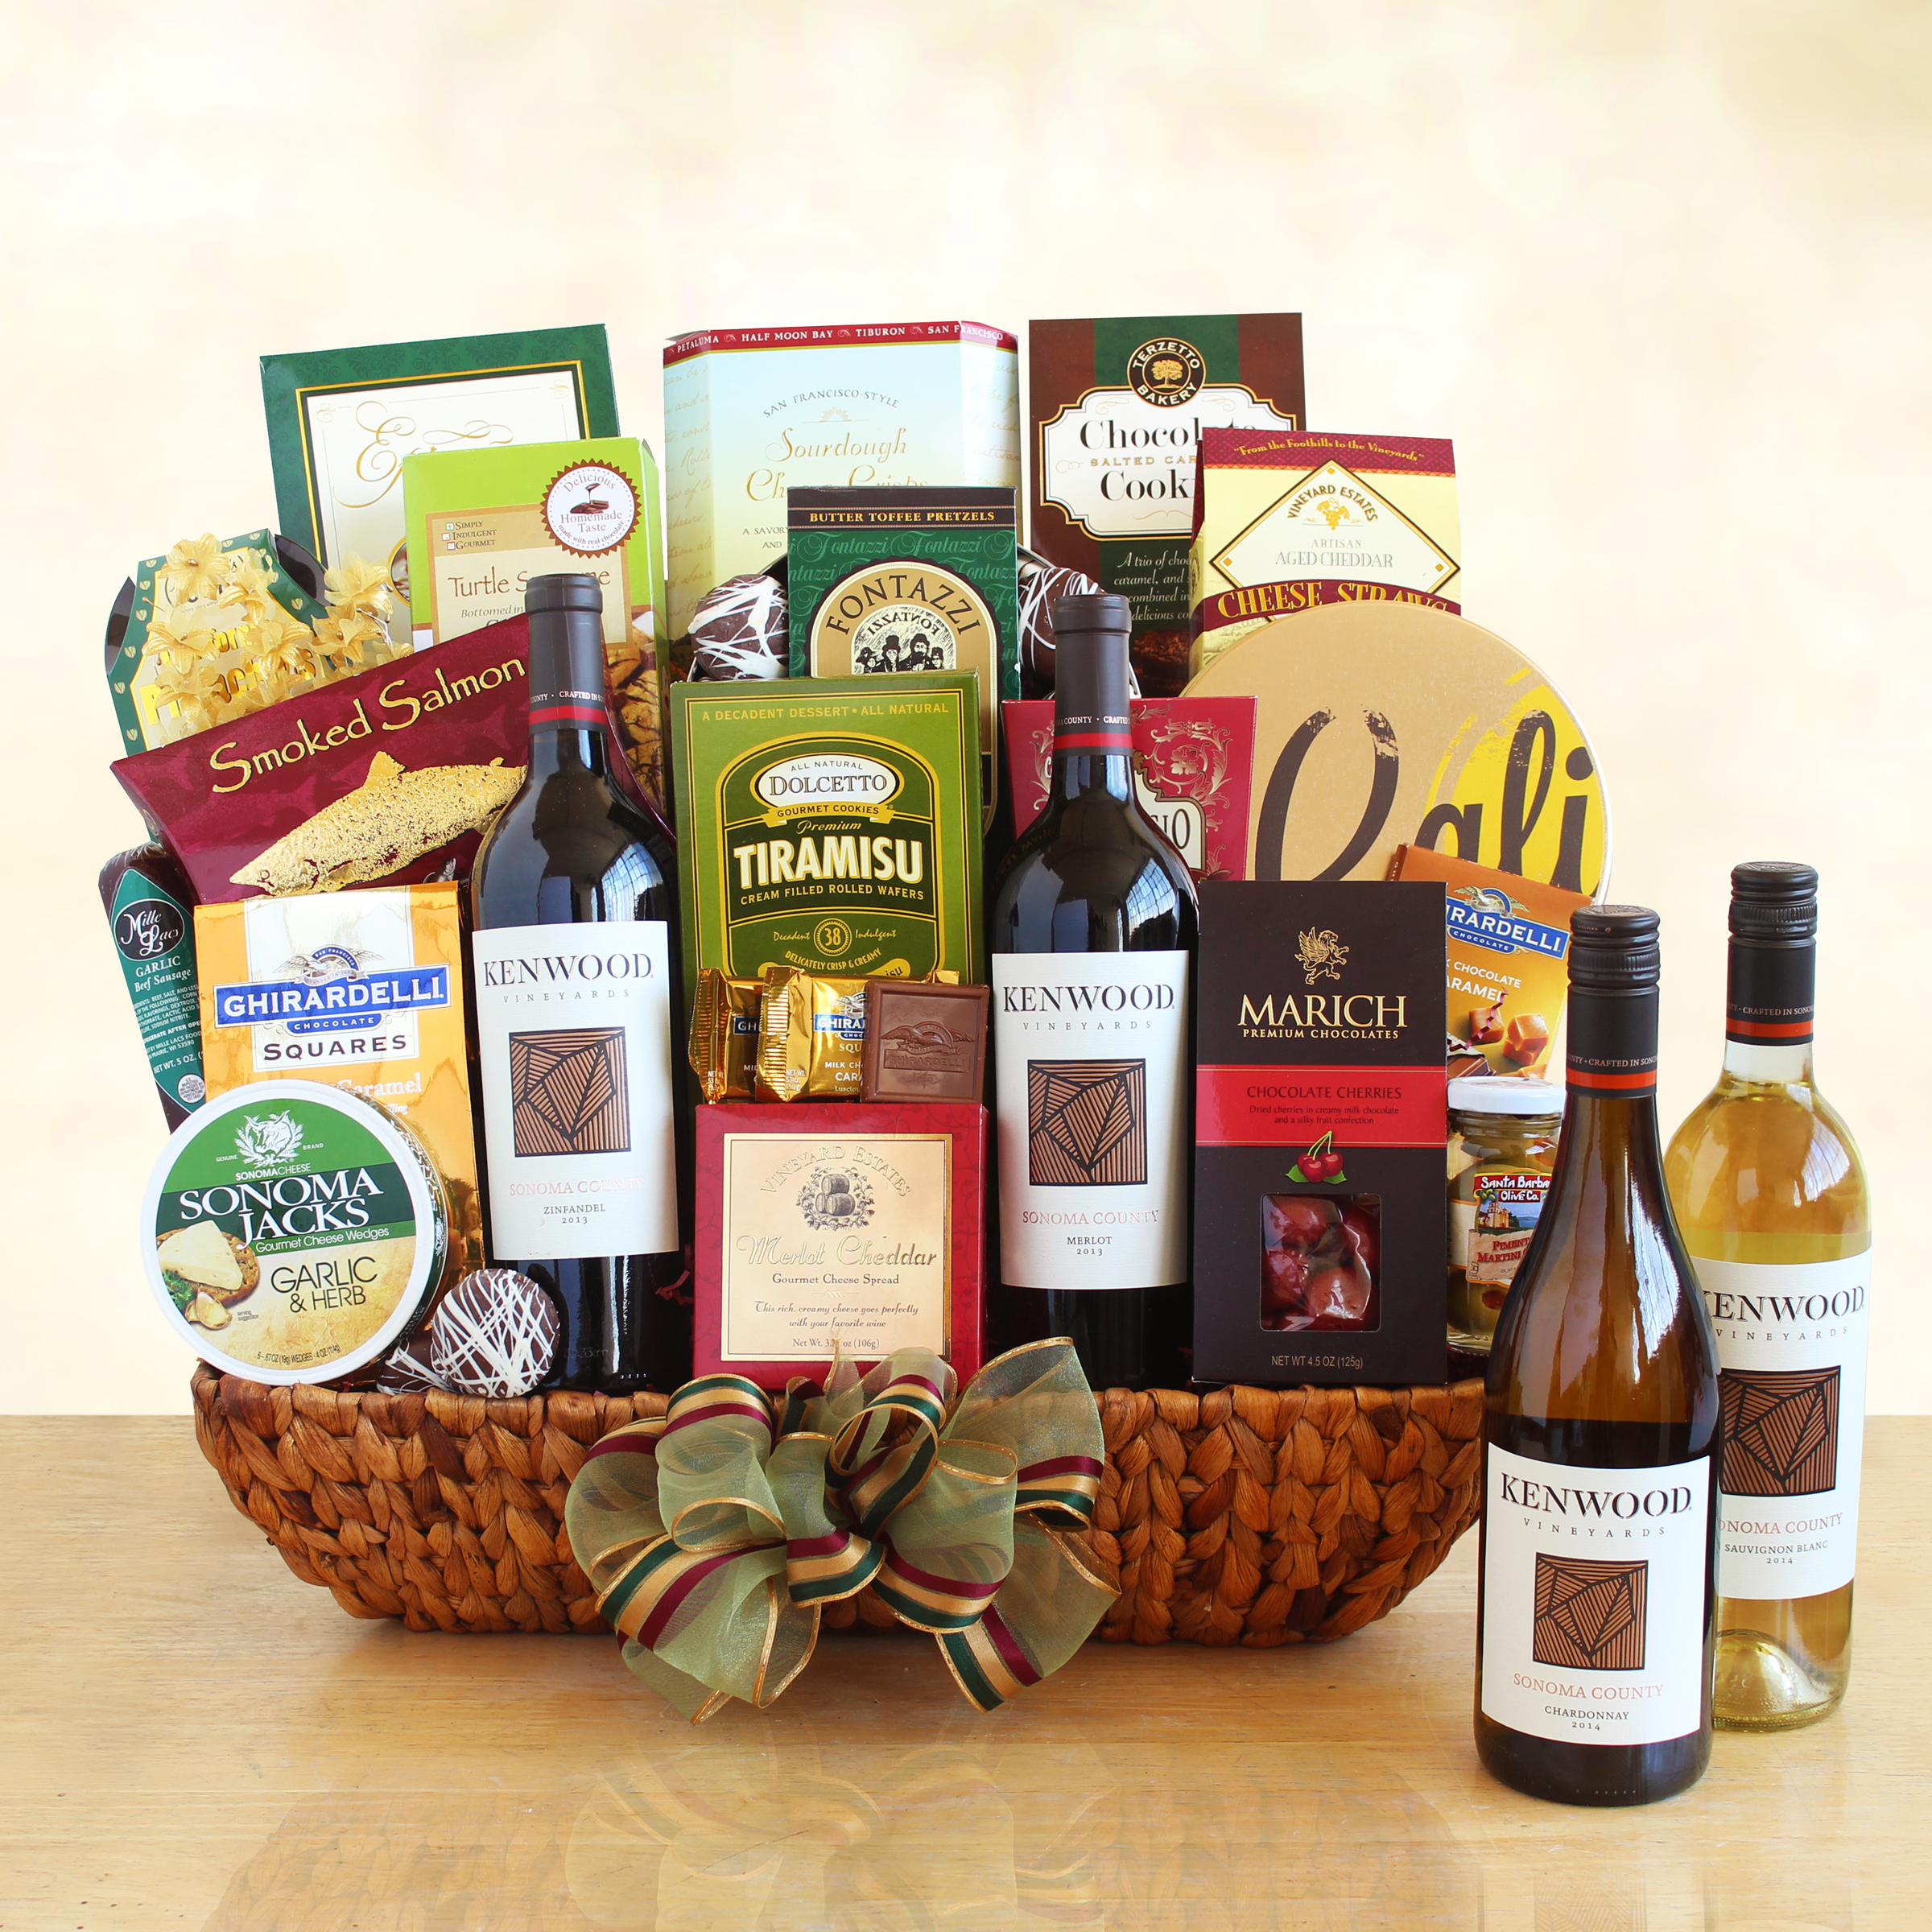 Whole Foods Corporate Gifts